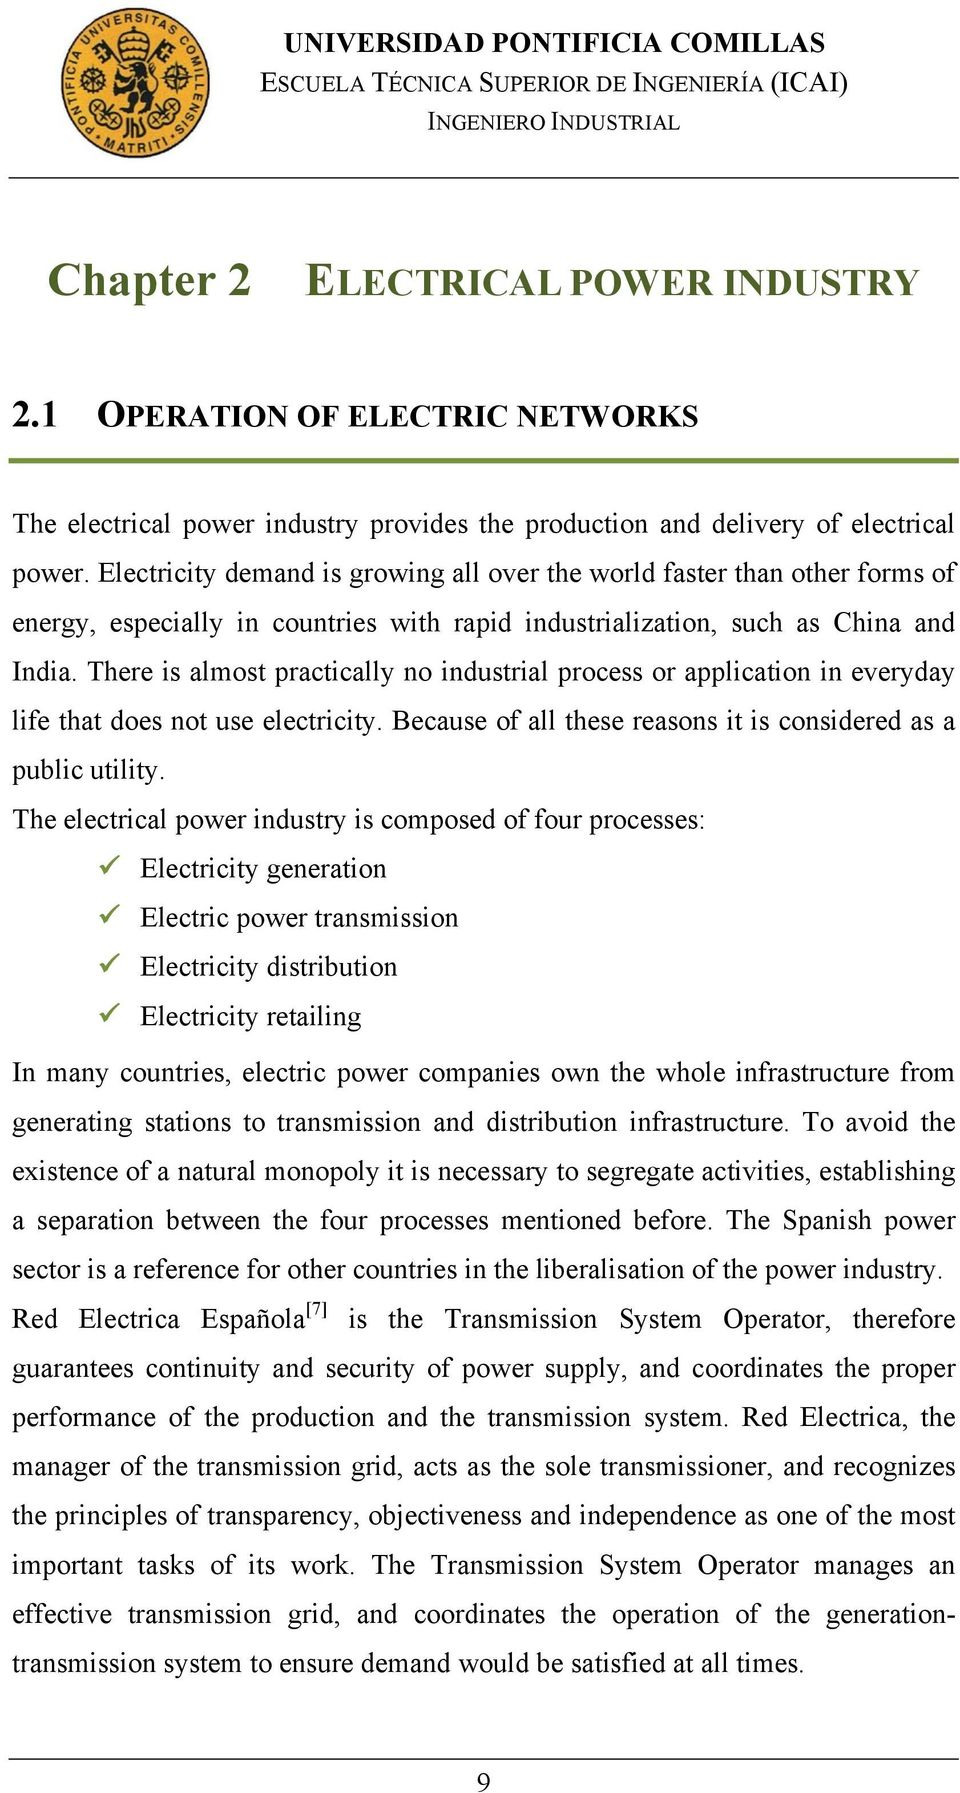 There is almost practically no industrial process or application in everyday life that does not use electricity. Because of all these reasons it is considered as a public utility.